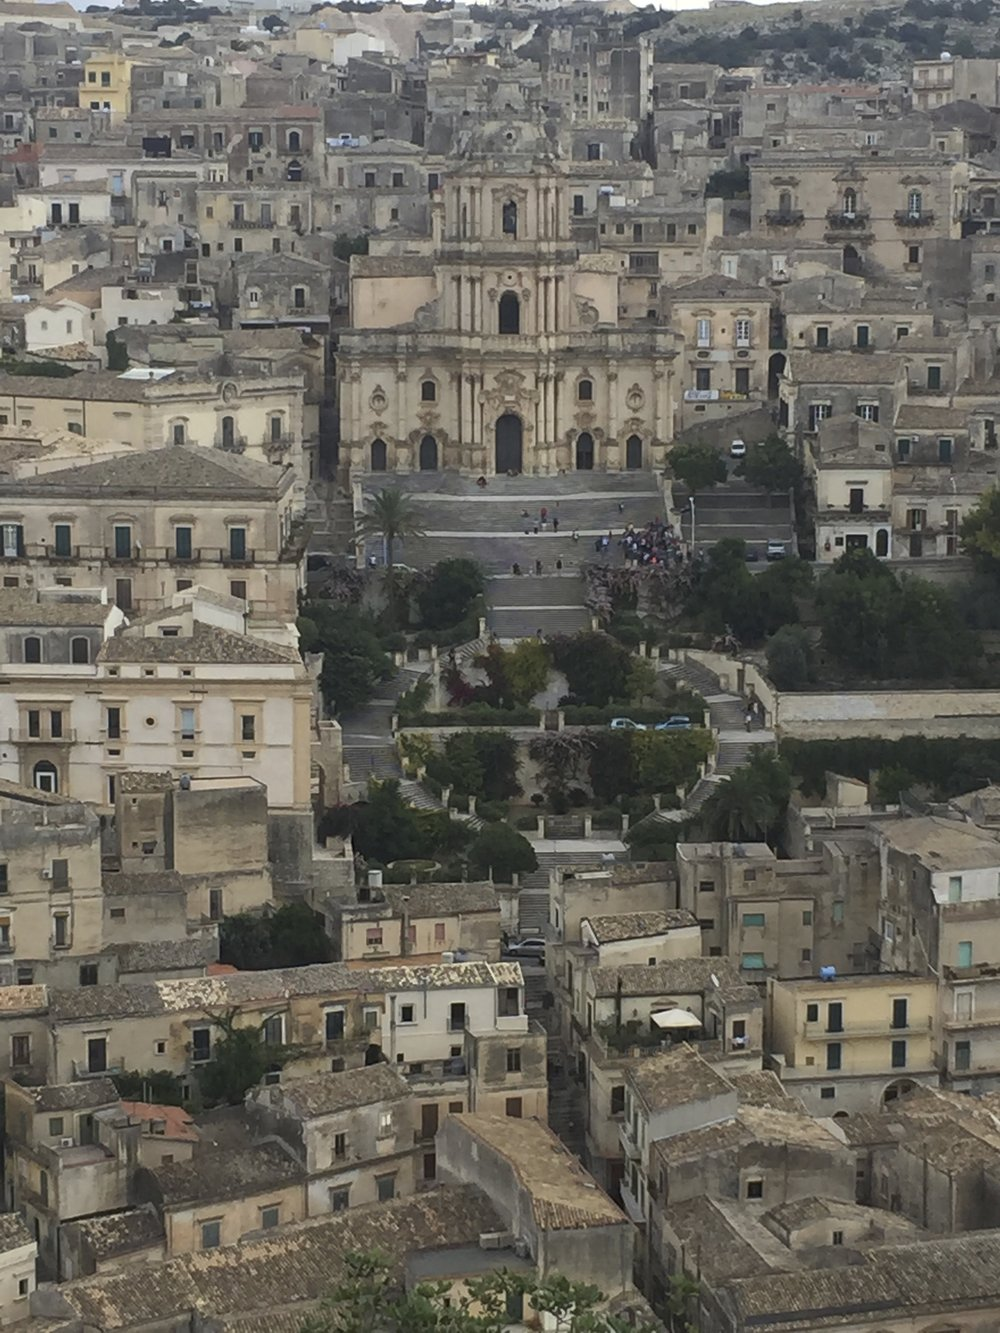 Modica in the Val di Noto